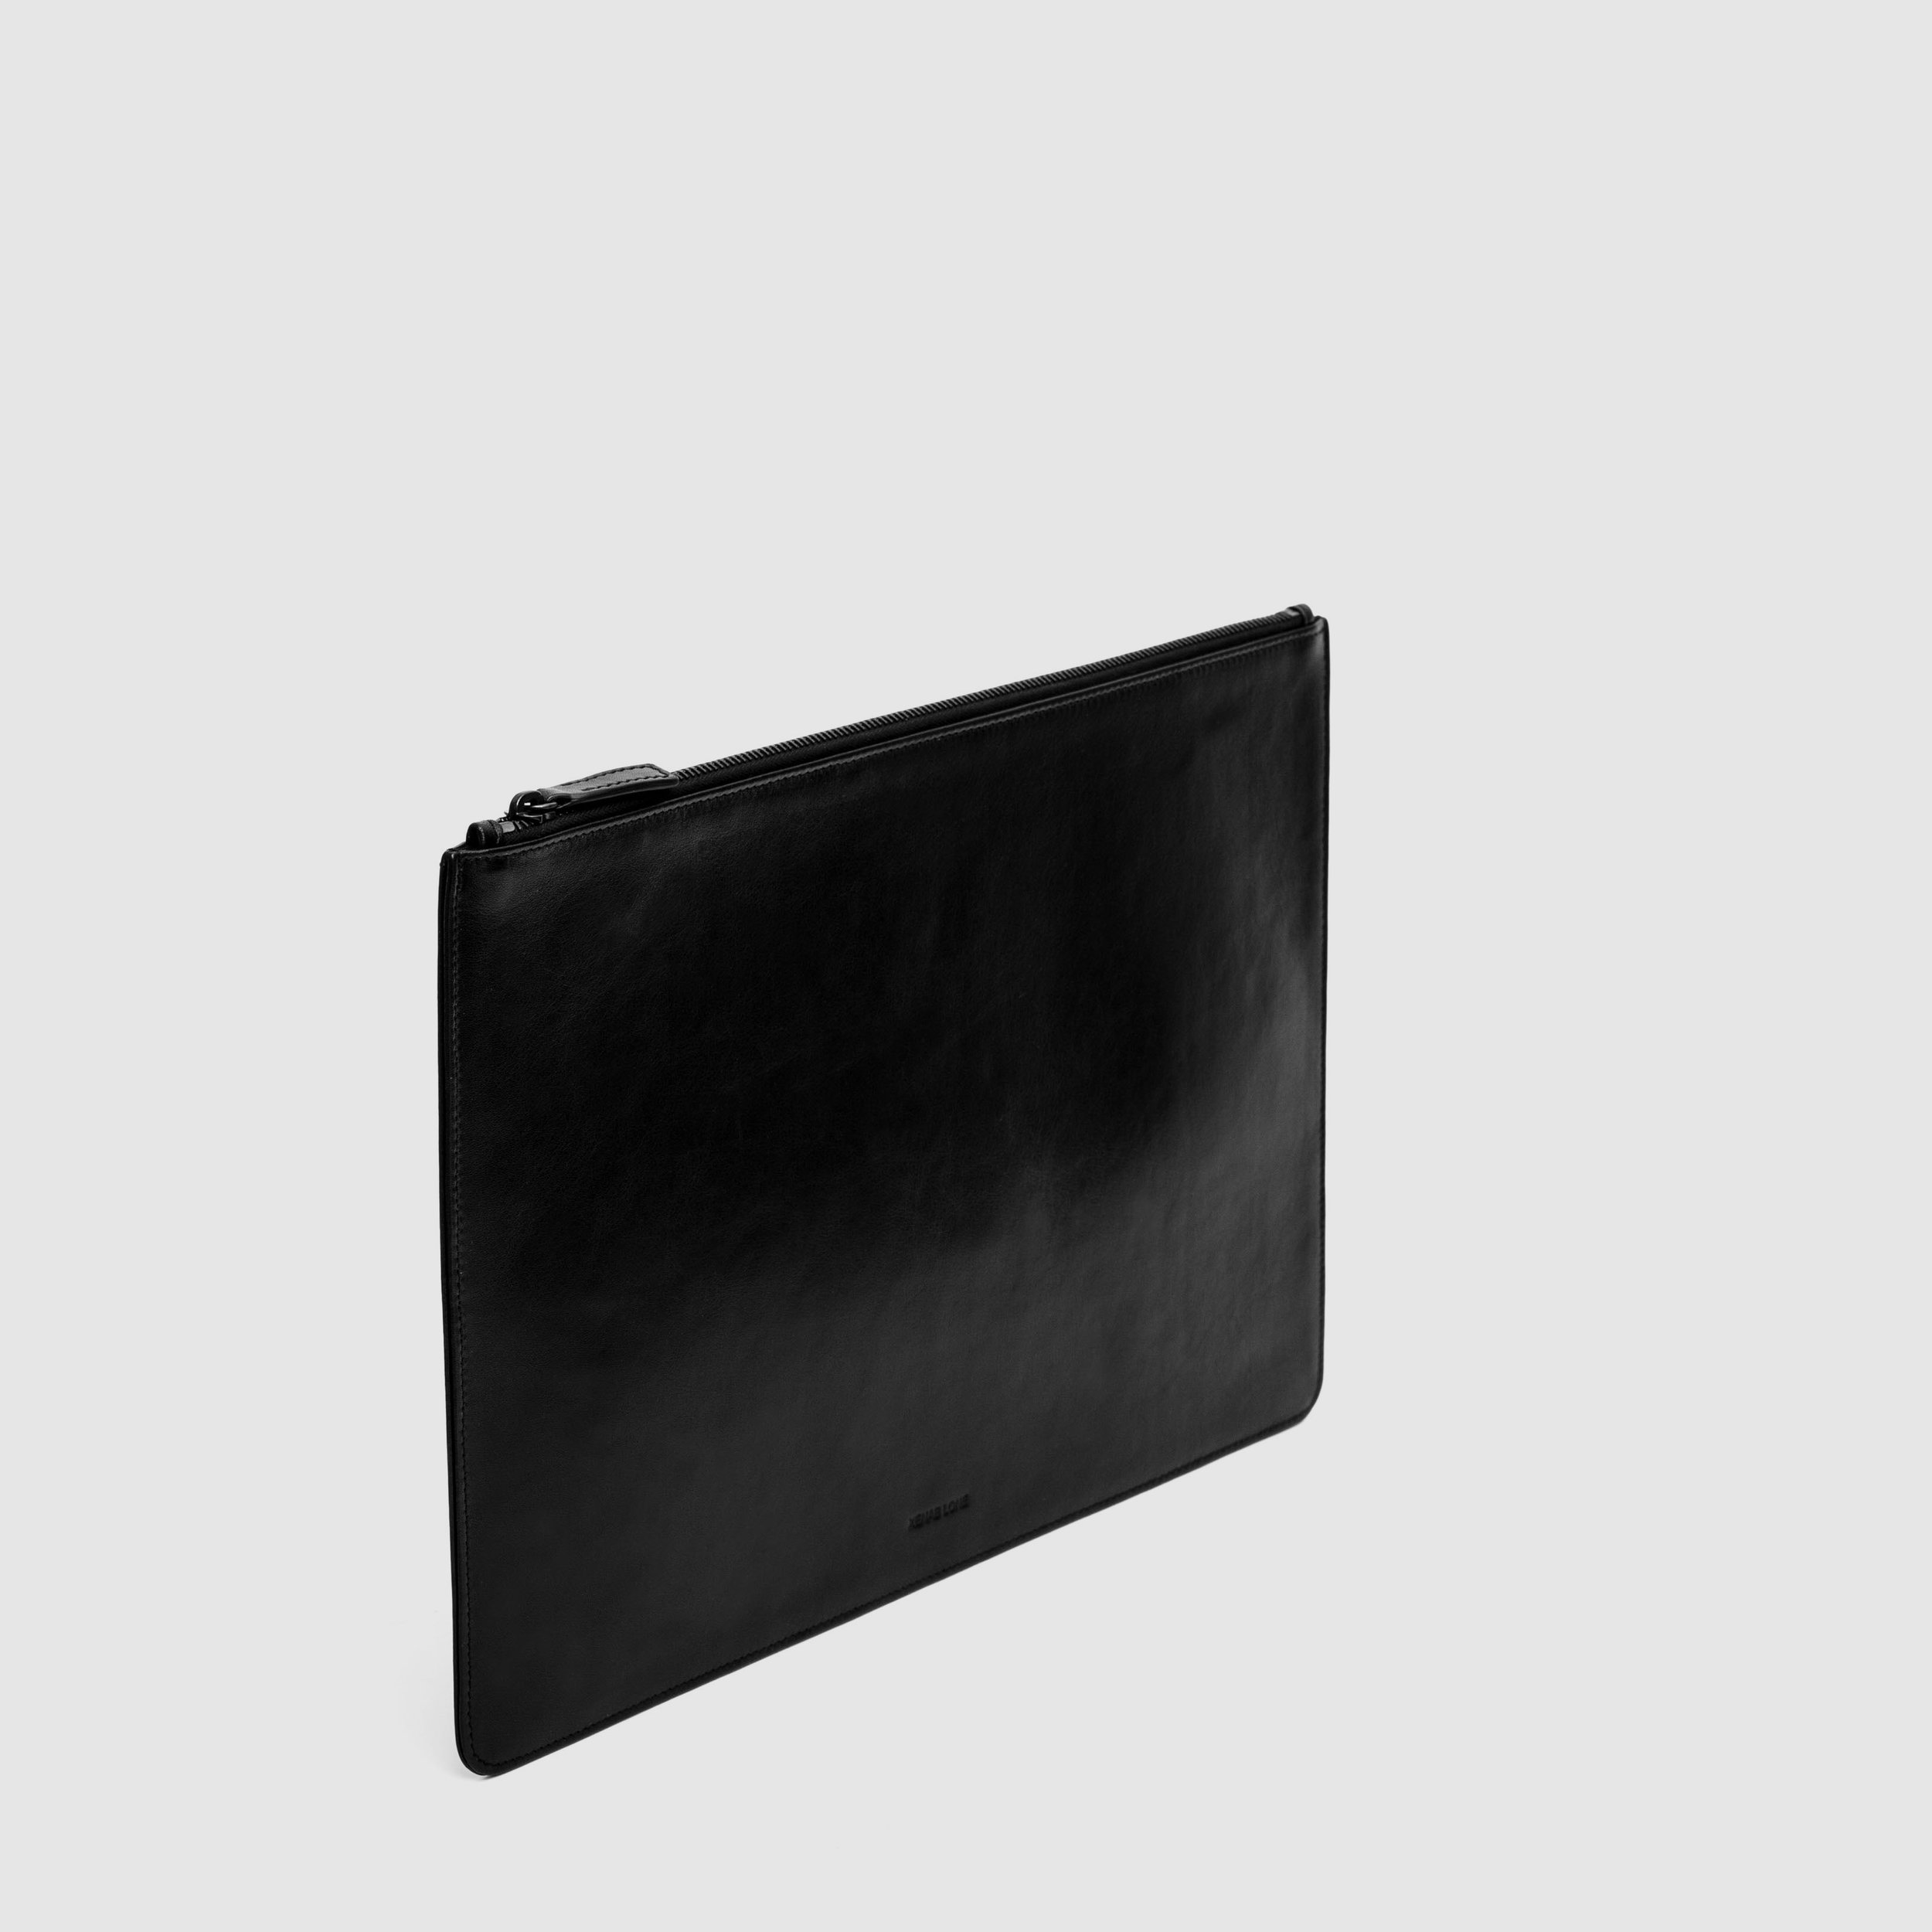 Wallets&Pouches_0002s_0001s_0003_Layer 20.jpg